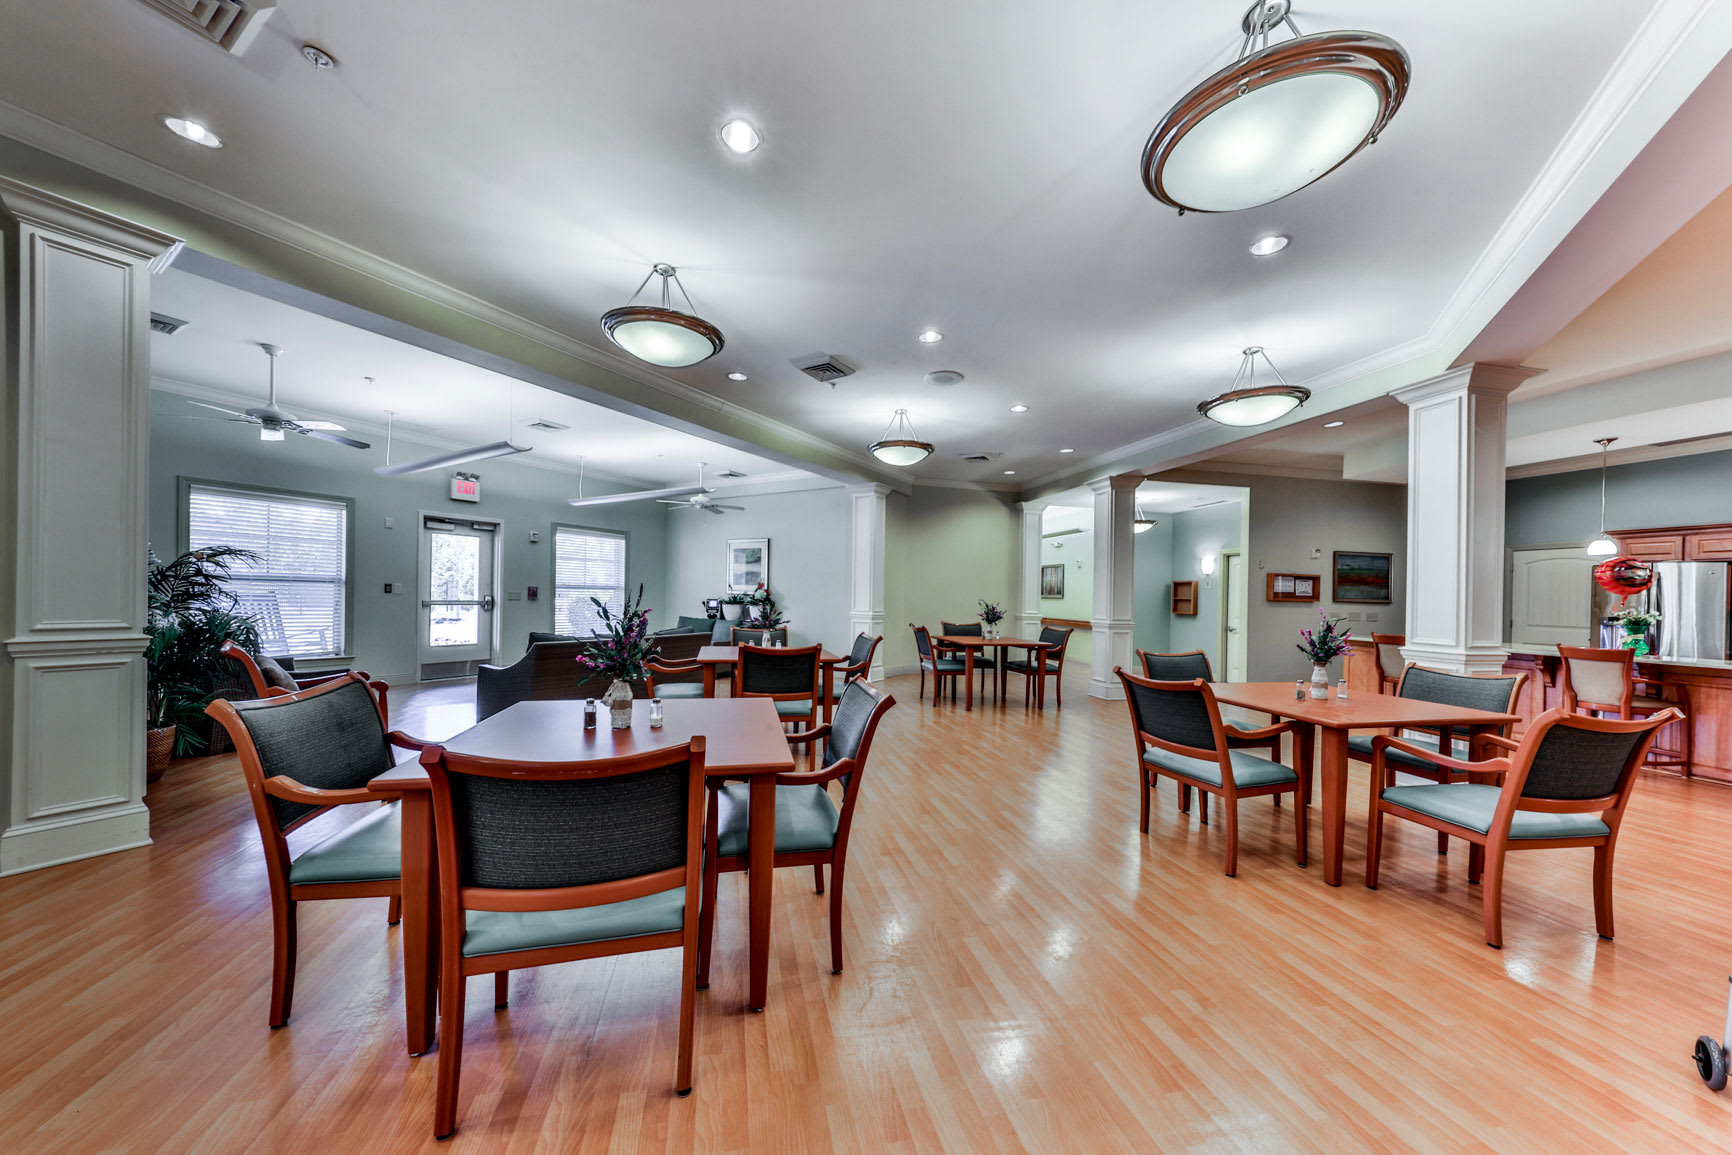 Dining area at Hope Center Memory Care in Fayetteville